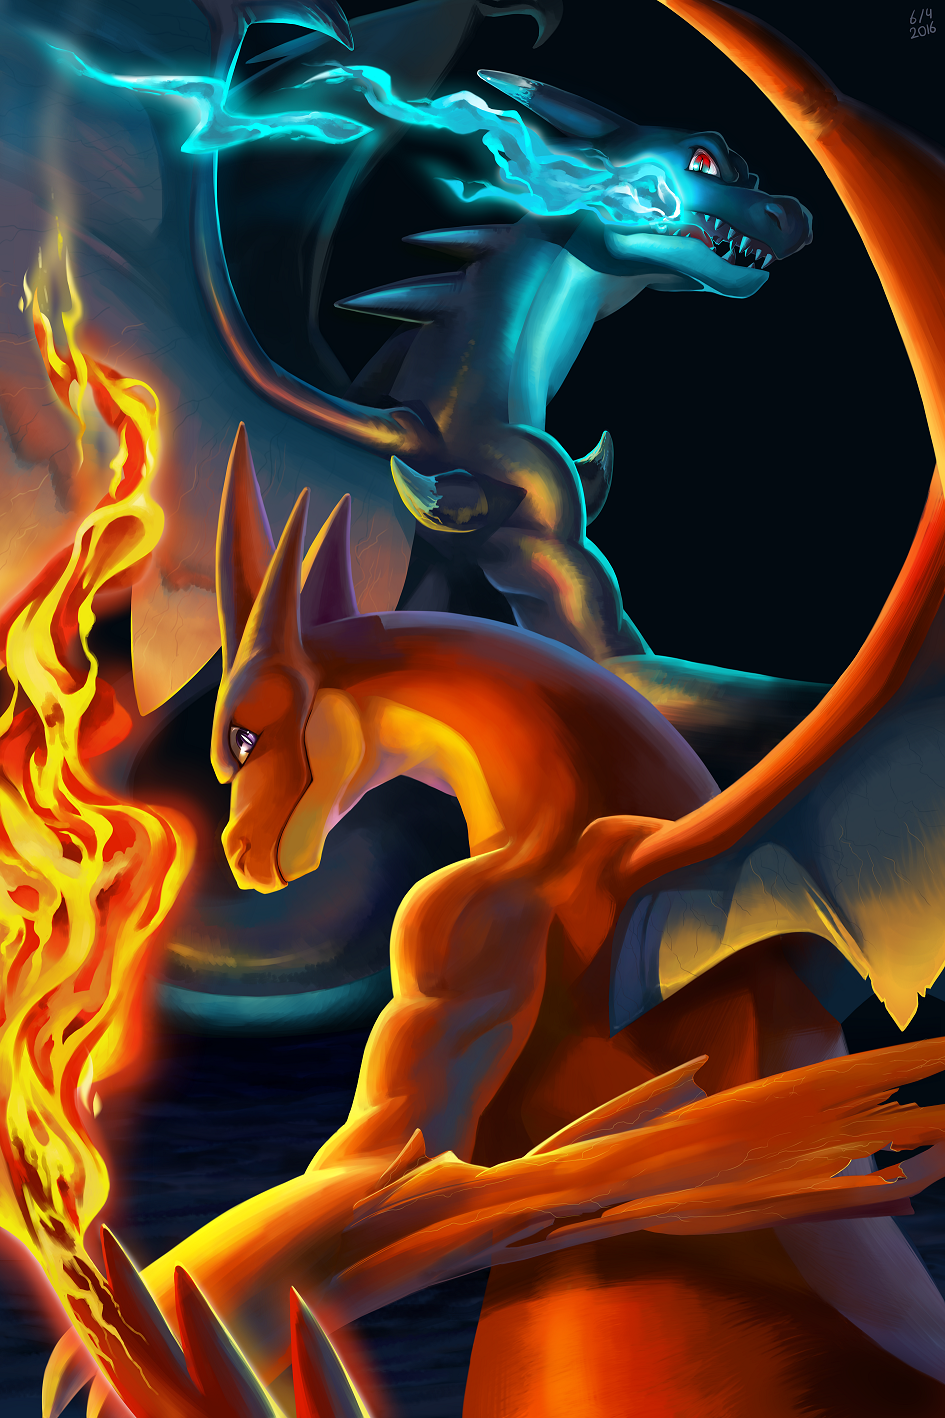 Mega charizard xy by VKliza on DeviantArt